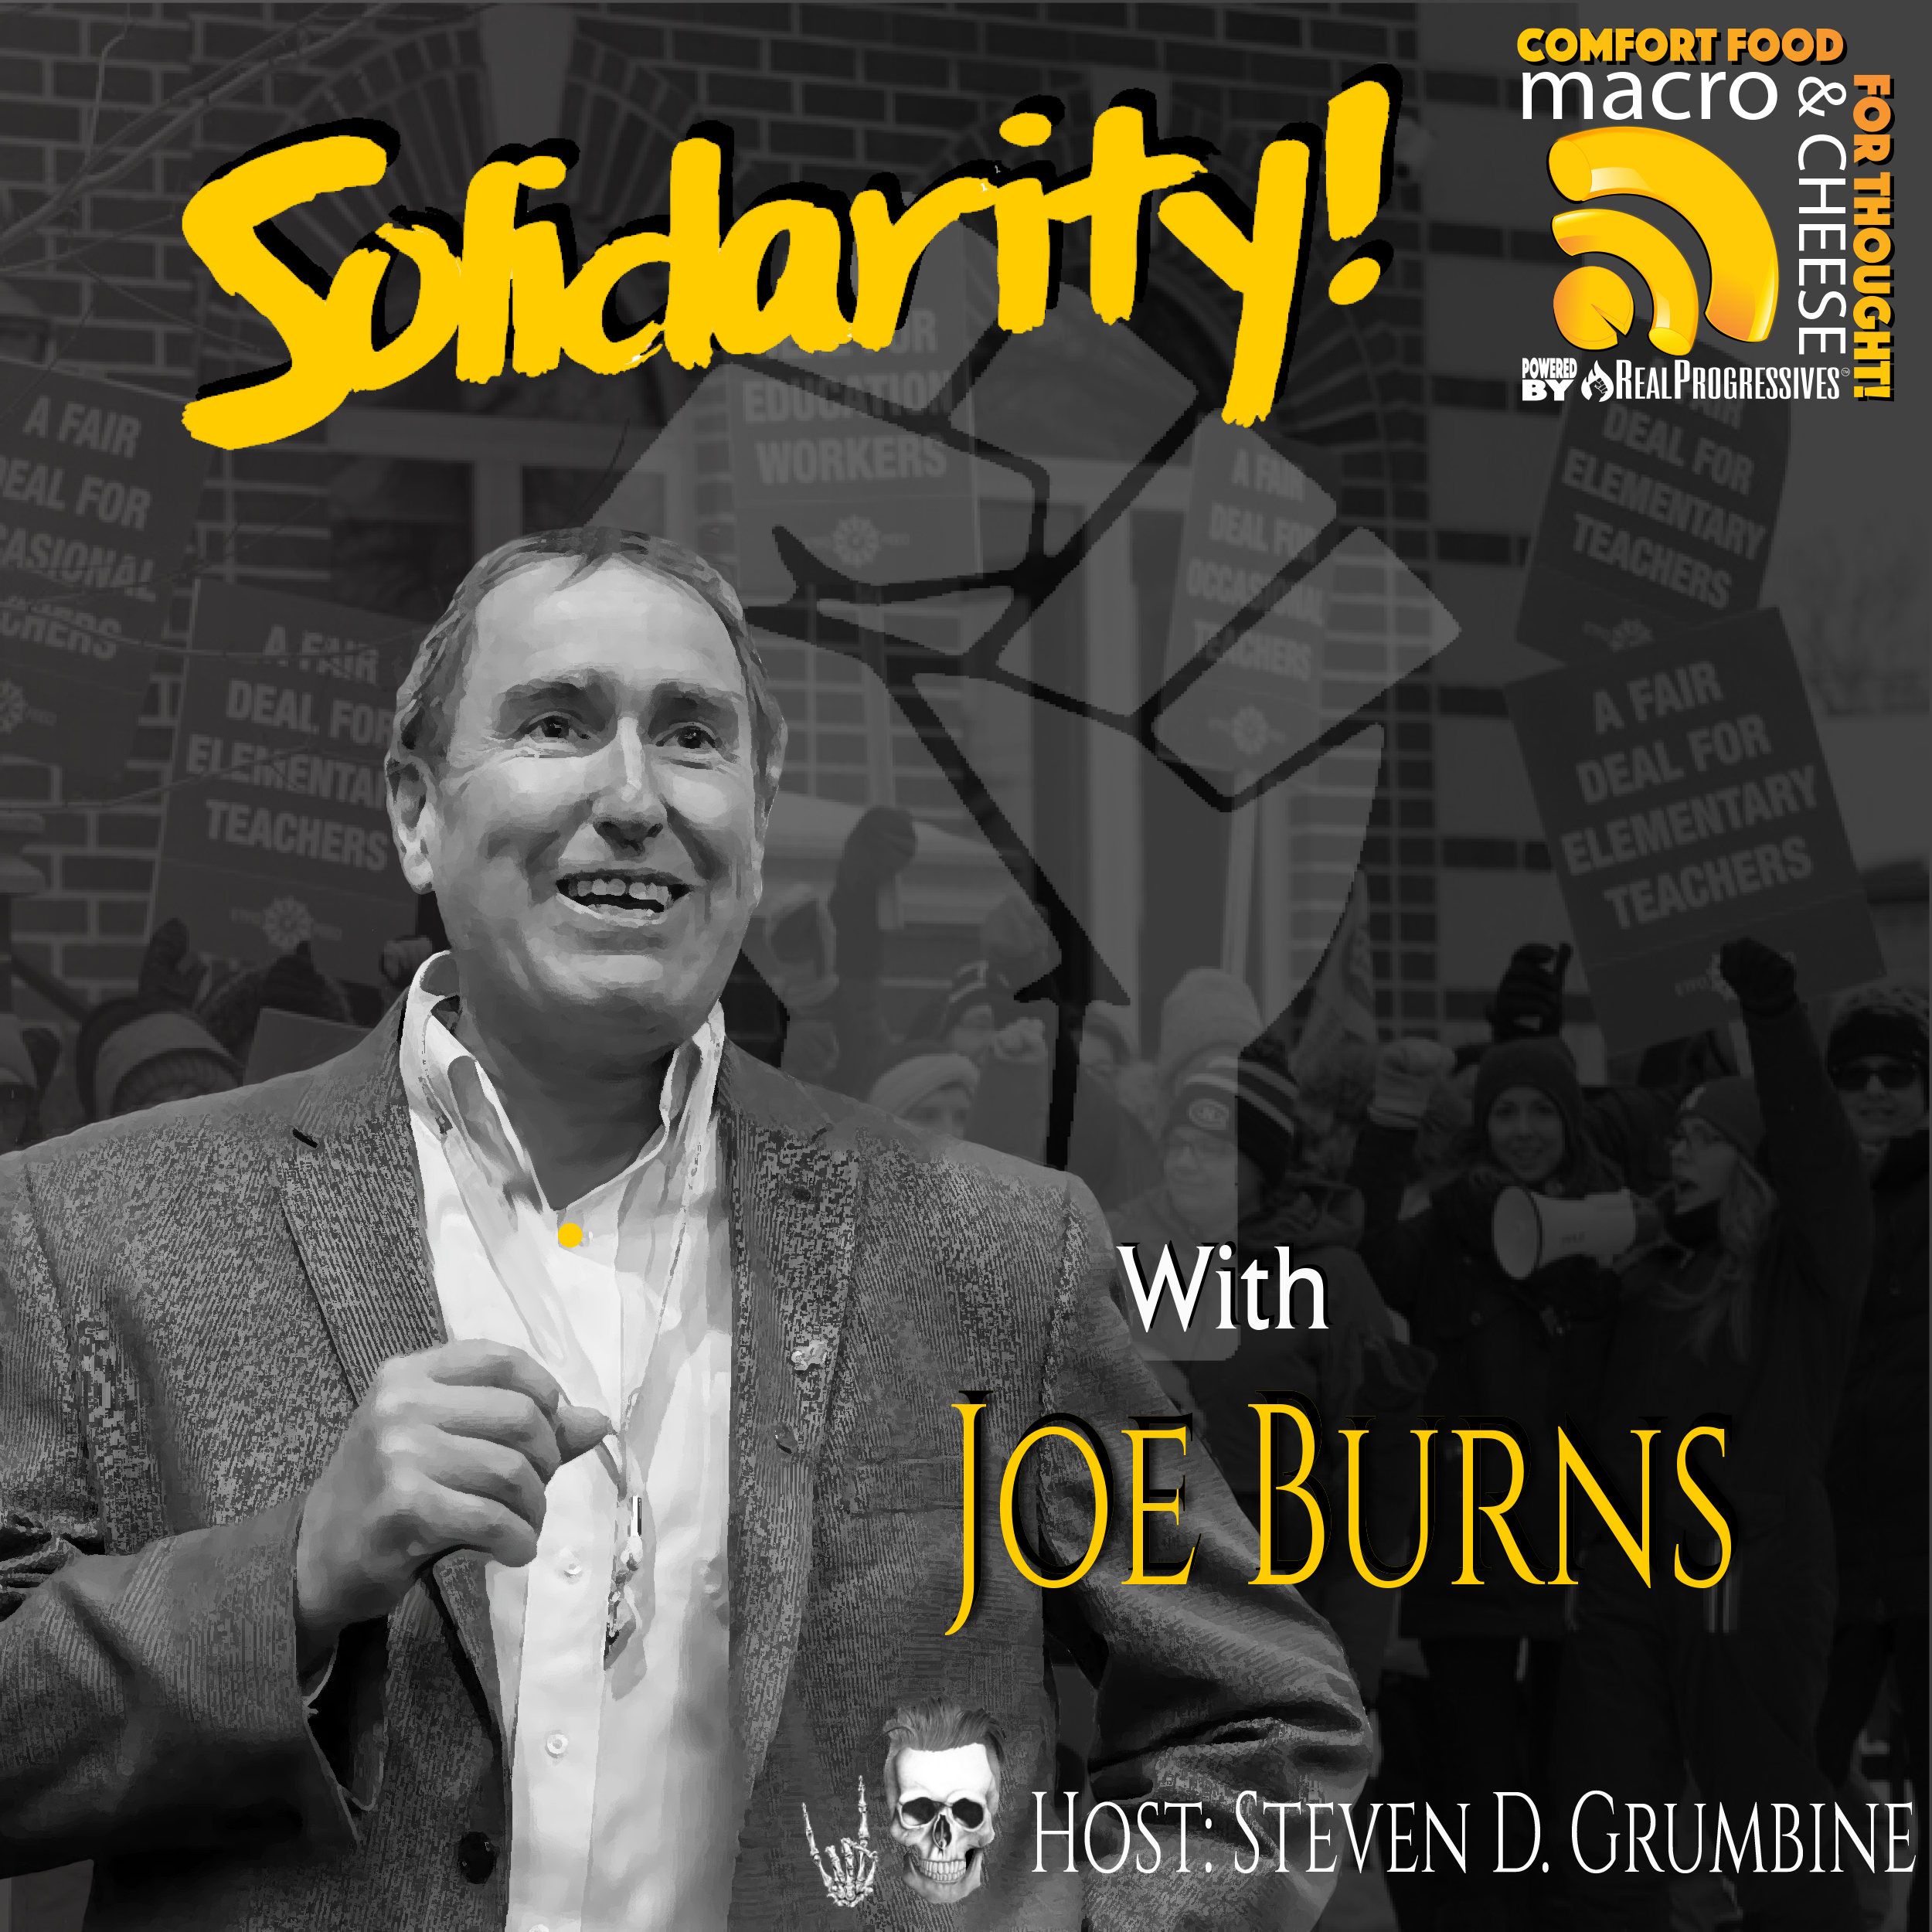 Solidarity with Joe Burns